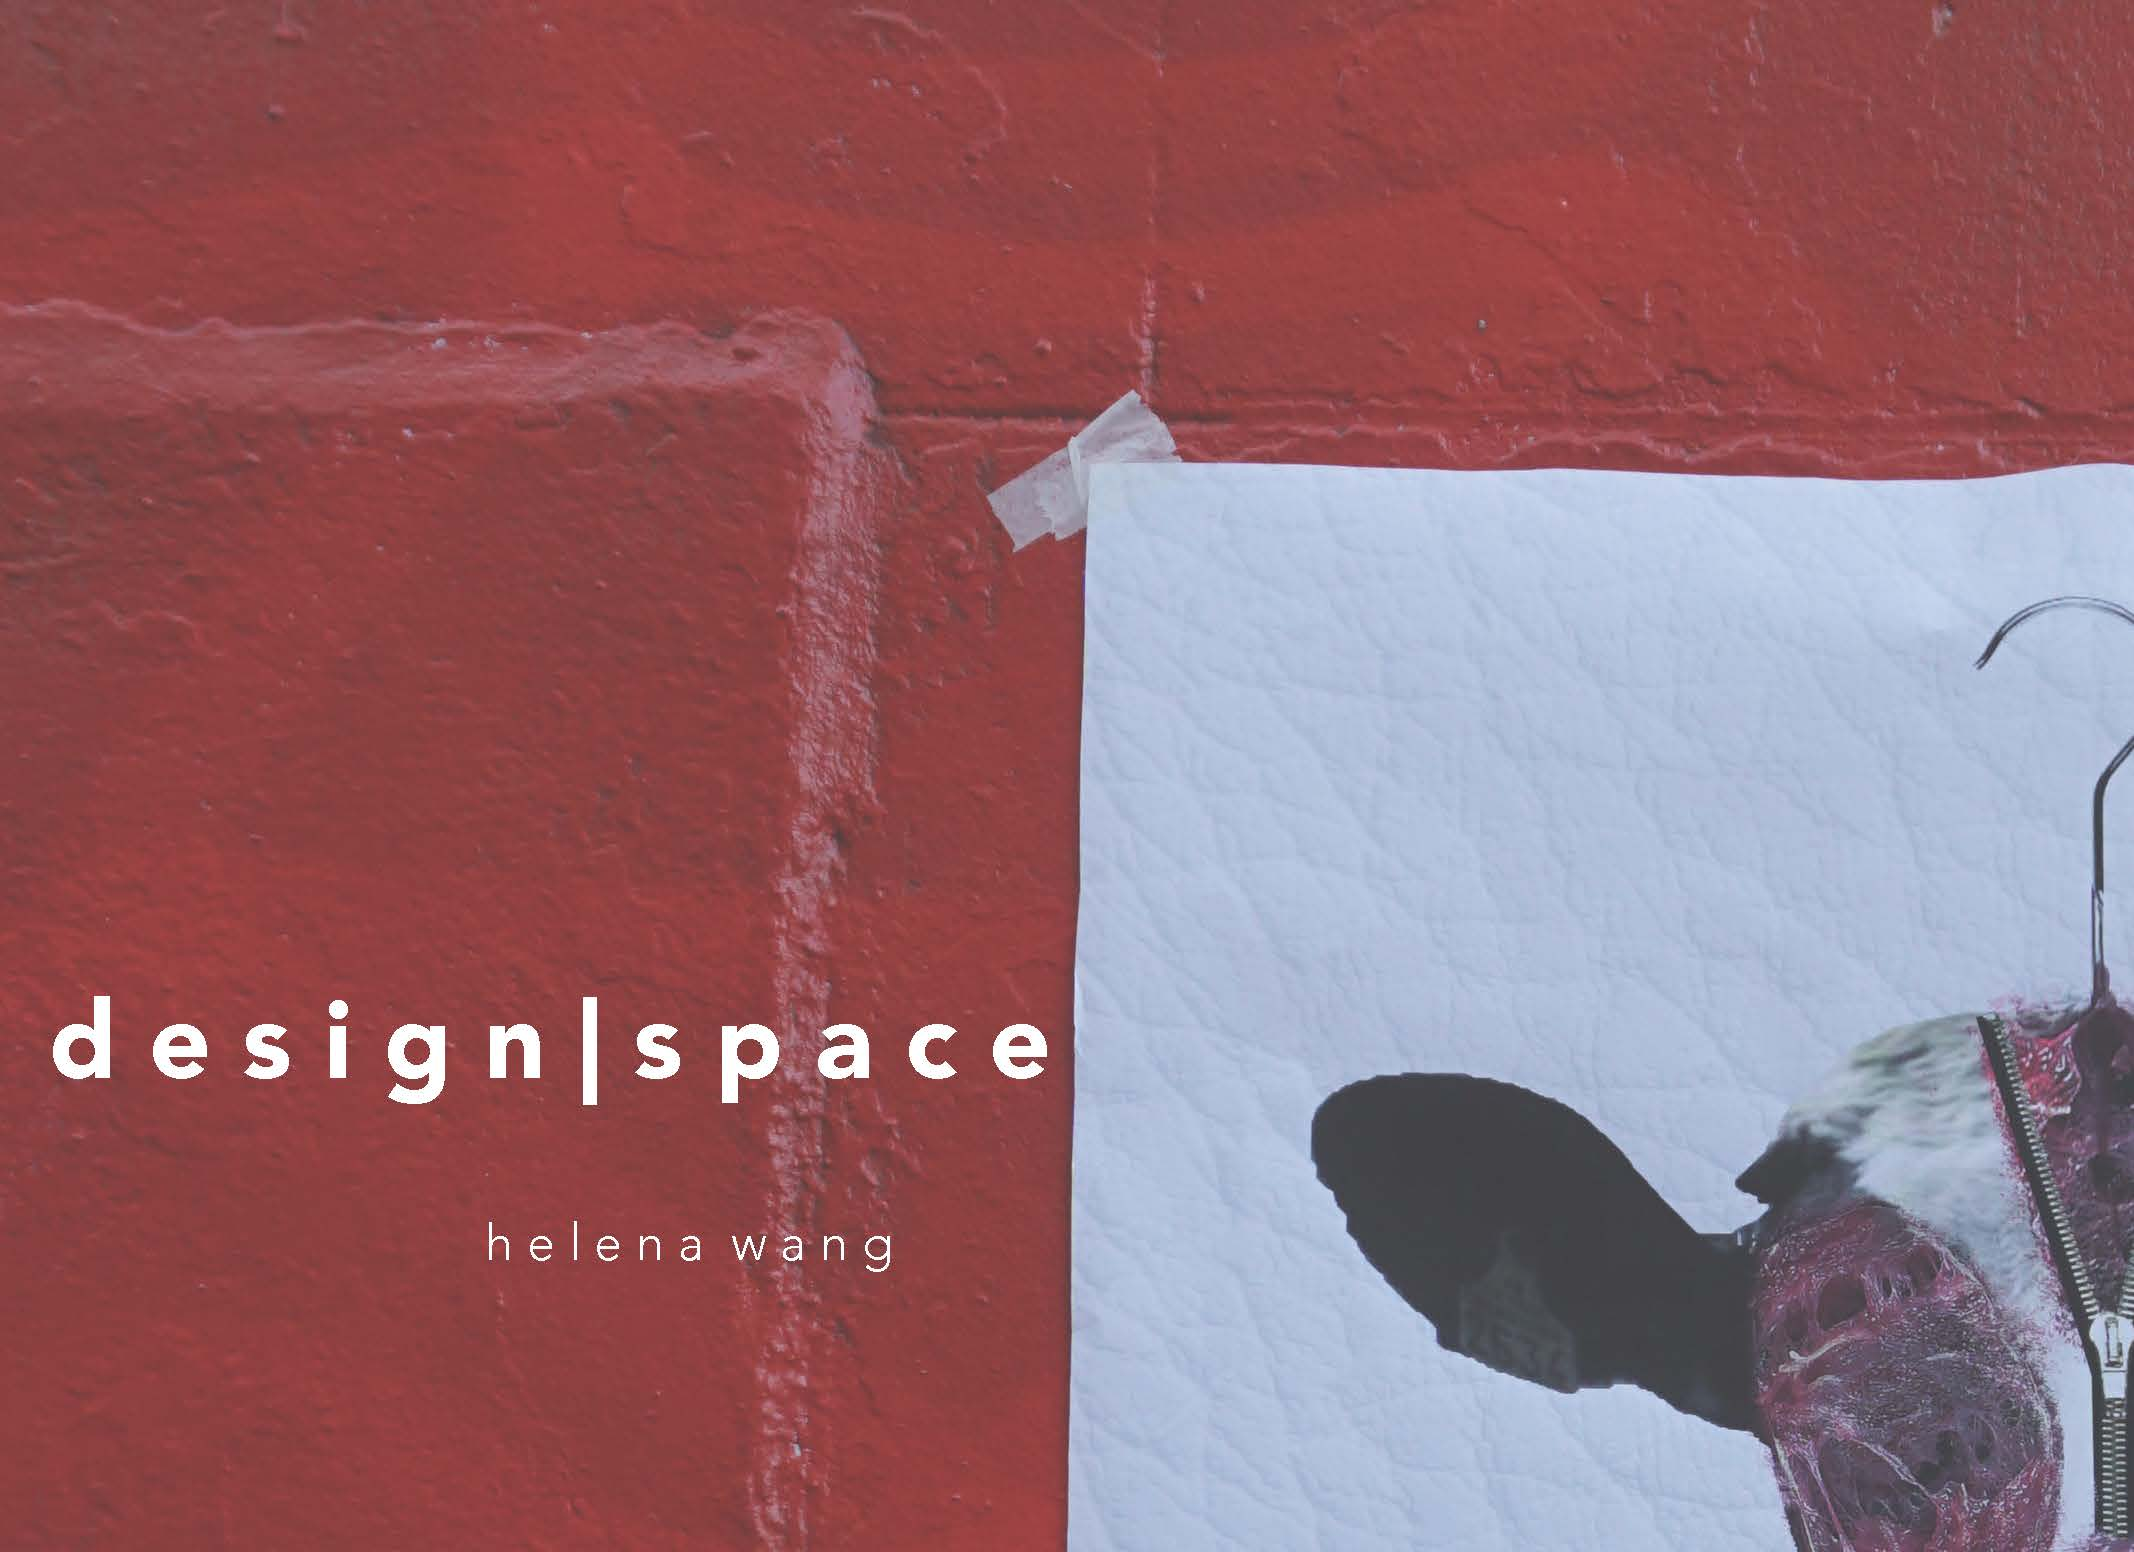 Visual Communication 2: Design & Space